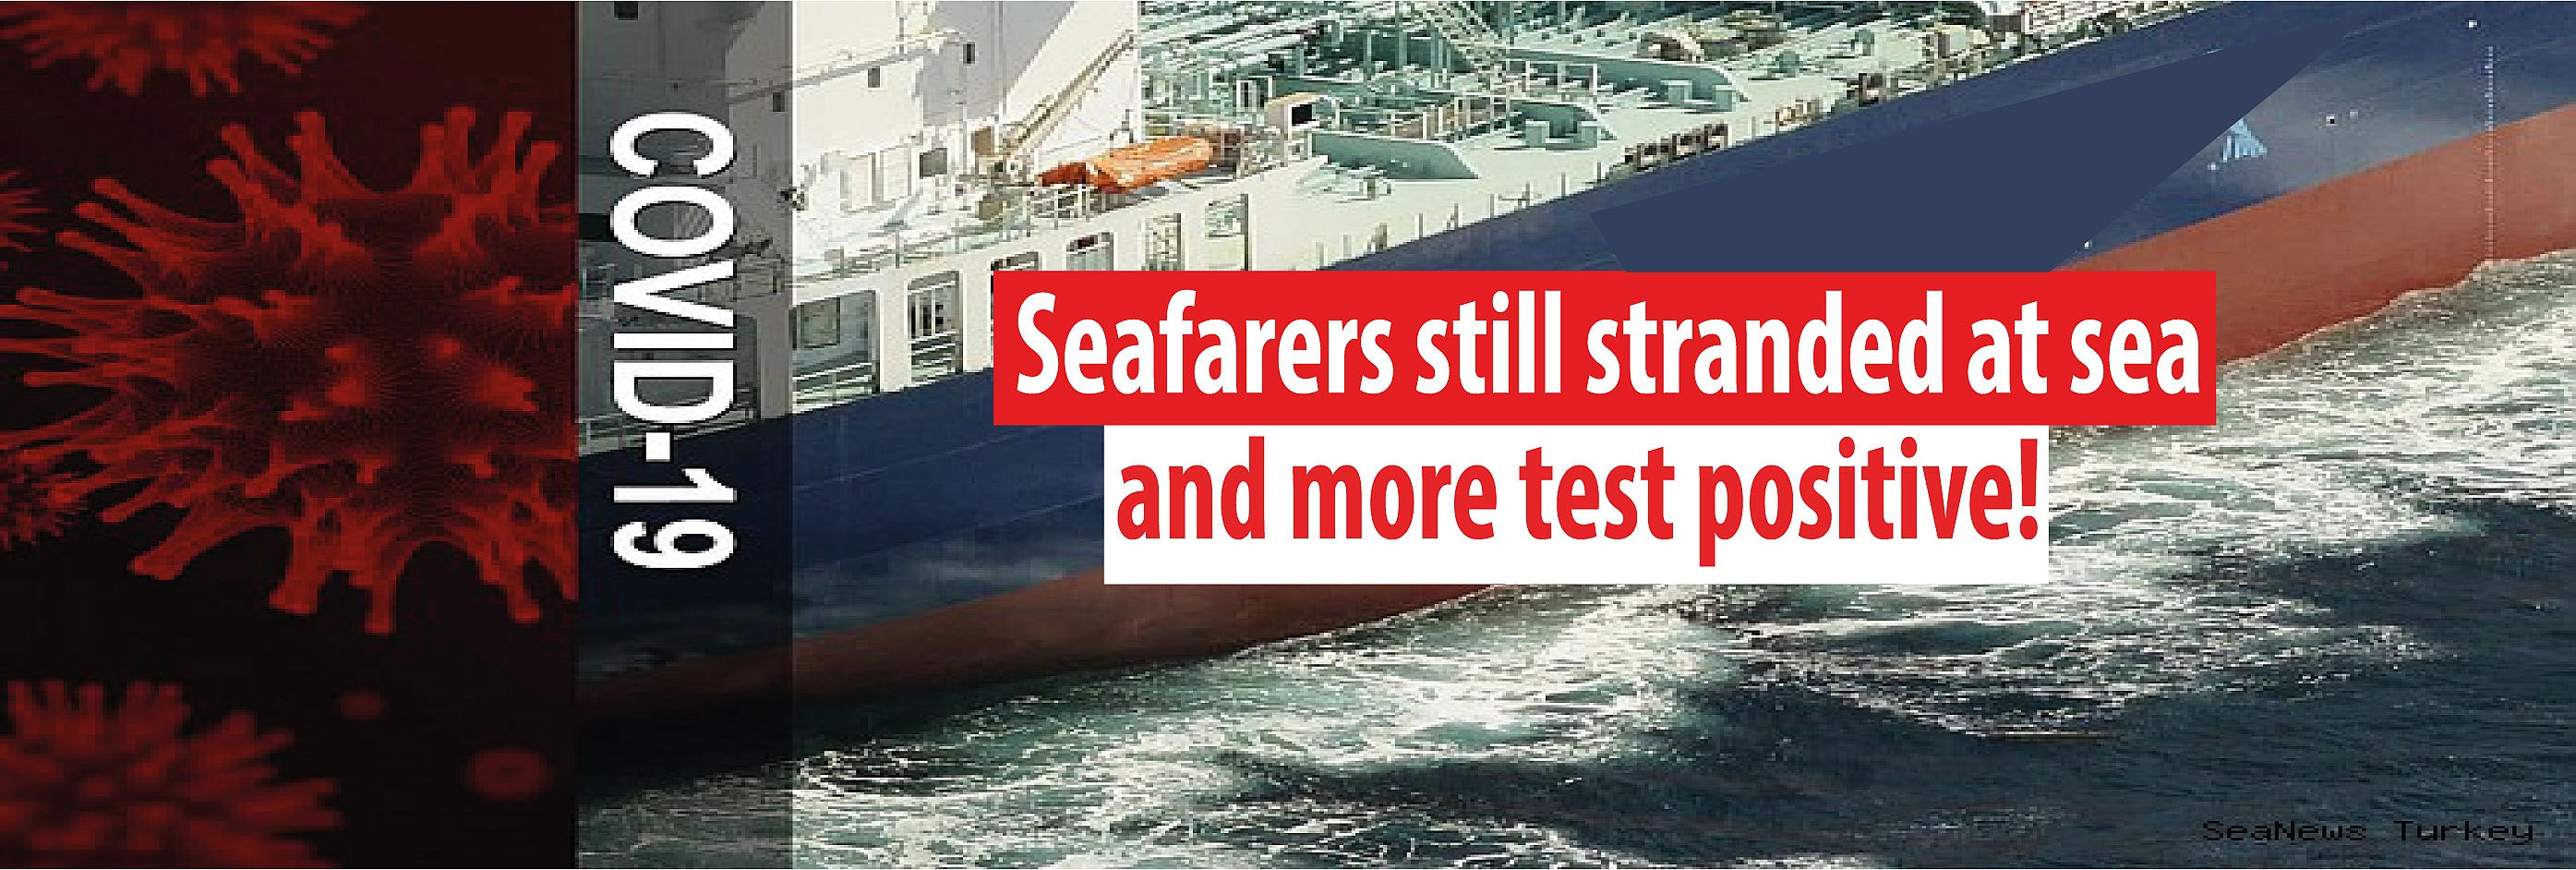 Seafarers still stranded at sea, and more test positive!